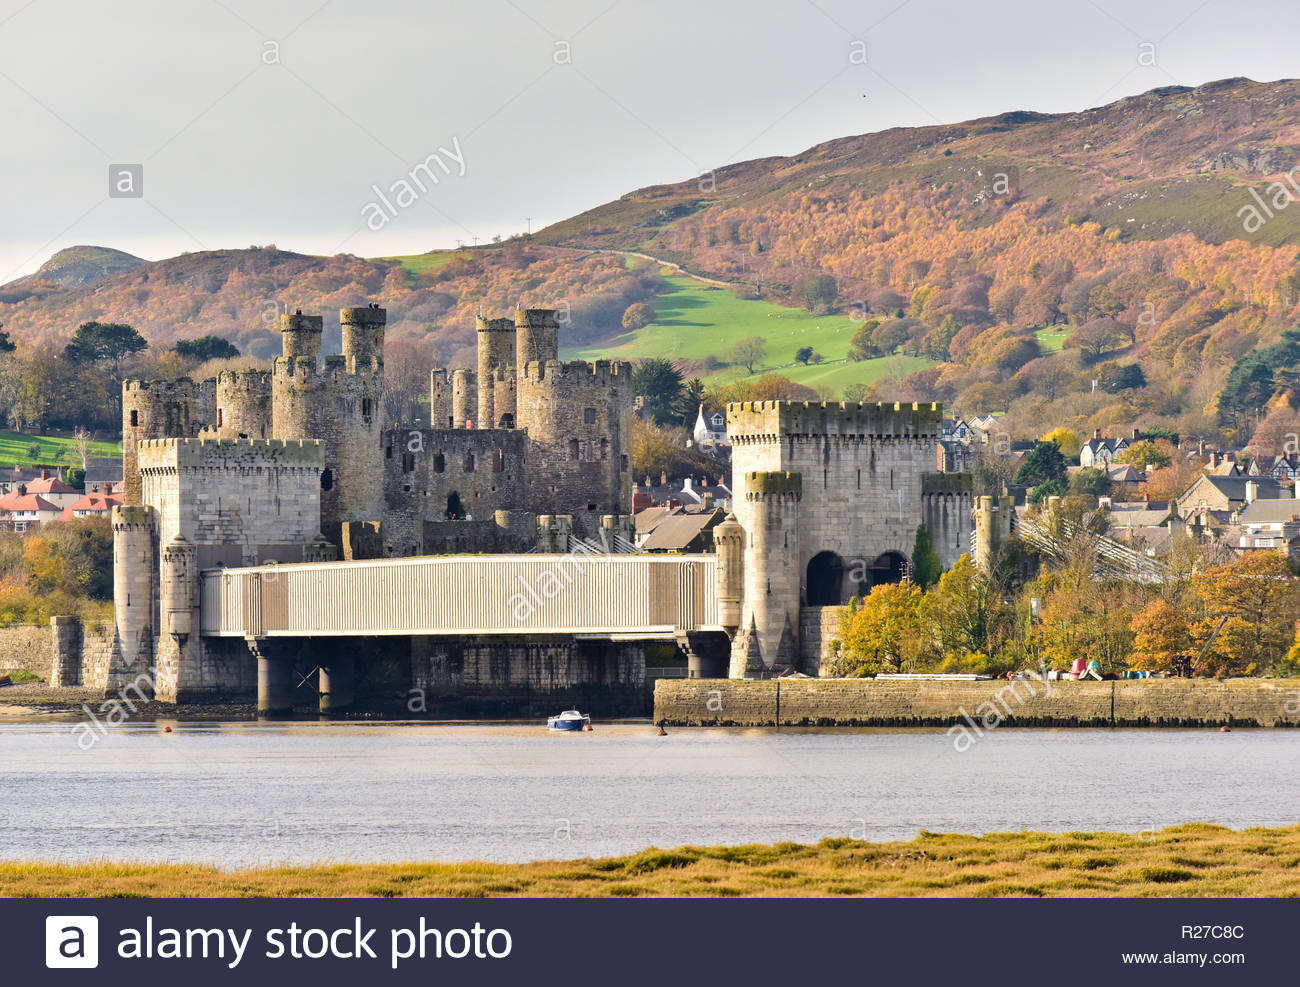 The Grade 1 listed Conwy railway bridge designed by Robert Stephenson with Conwy Castle and Conwy Mountain behind. Conwy County Borough, Wales, UK. Stock Photo